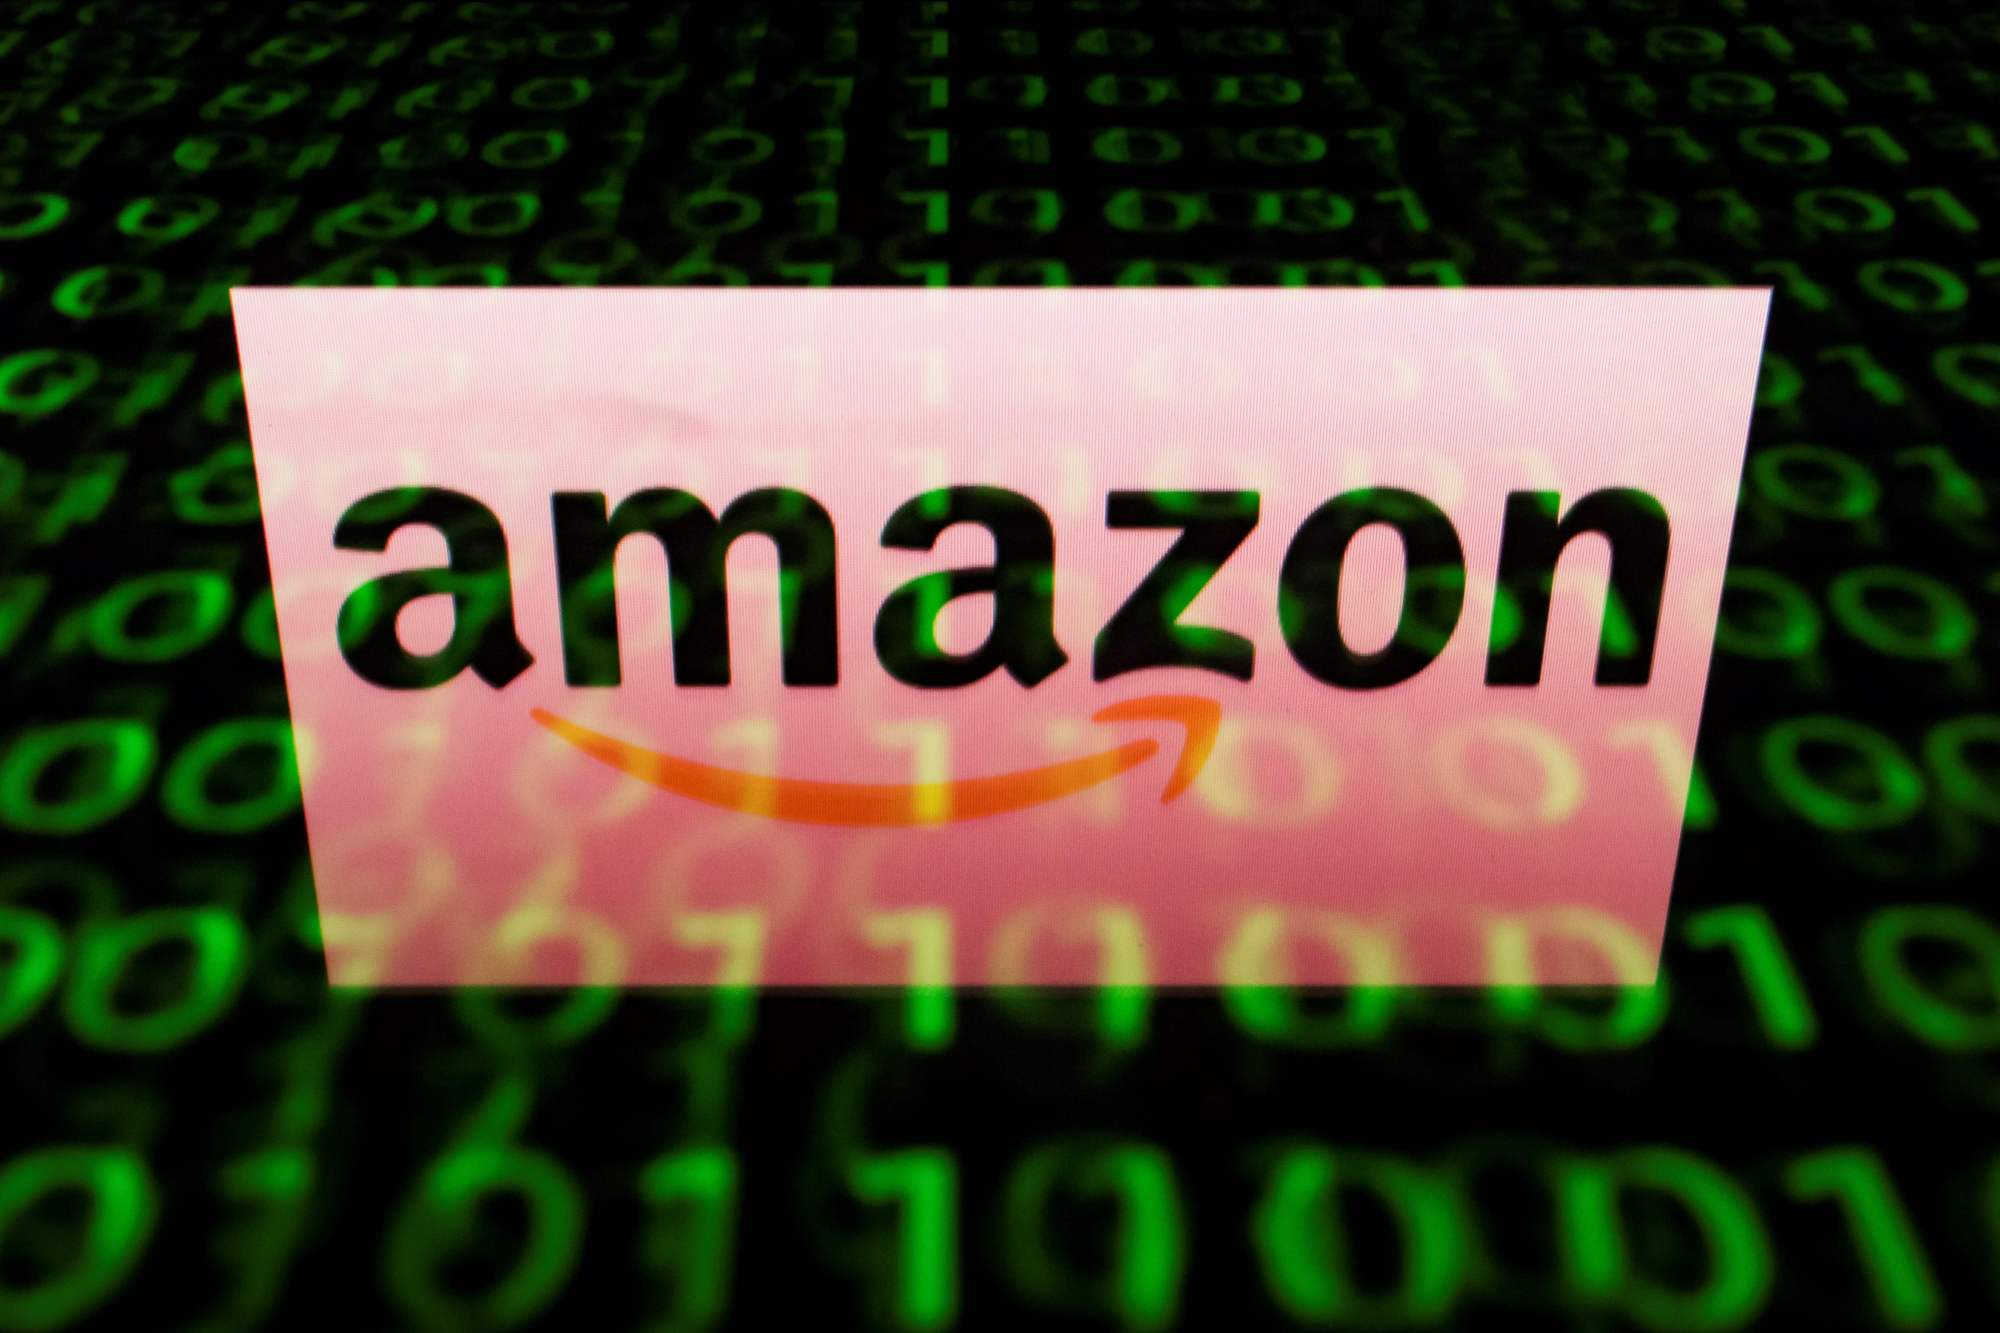 The Amazon logo is displayed on a screen and reflected on a tablet in Paris in April. Amazon set its sights on the pharmacy market Thursday with the acquisition of tech-focused retailer PillPack, sending shock waves throug.h the sector over prospects of disruption by the U.S online colossus. | AFP-JIJI